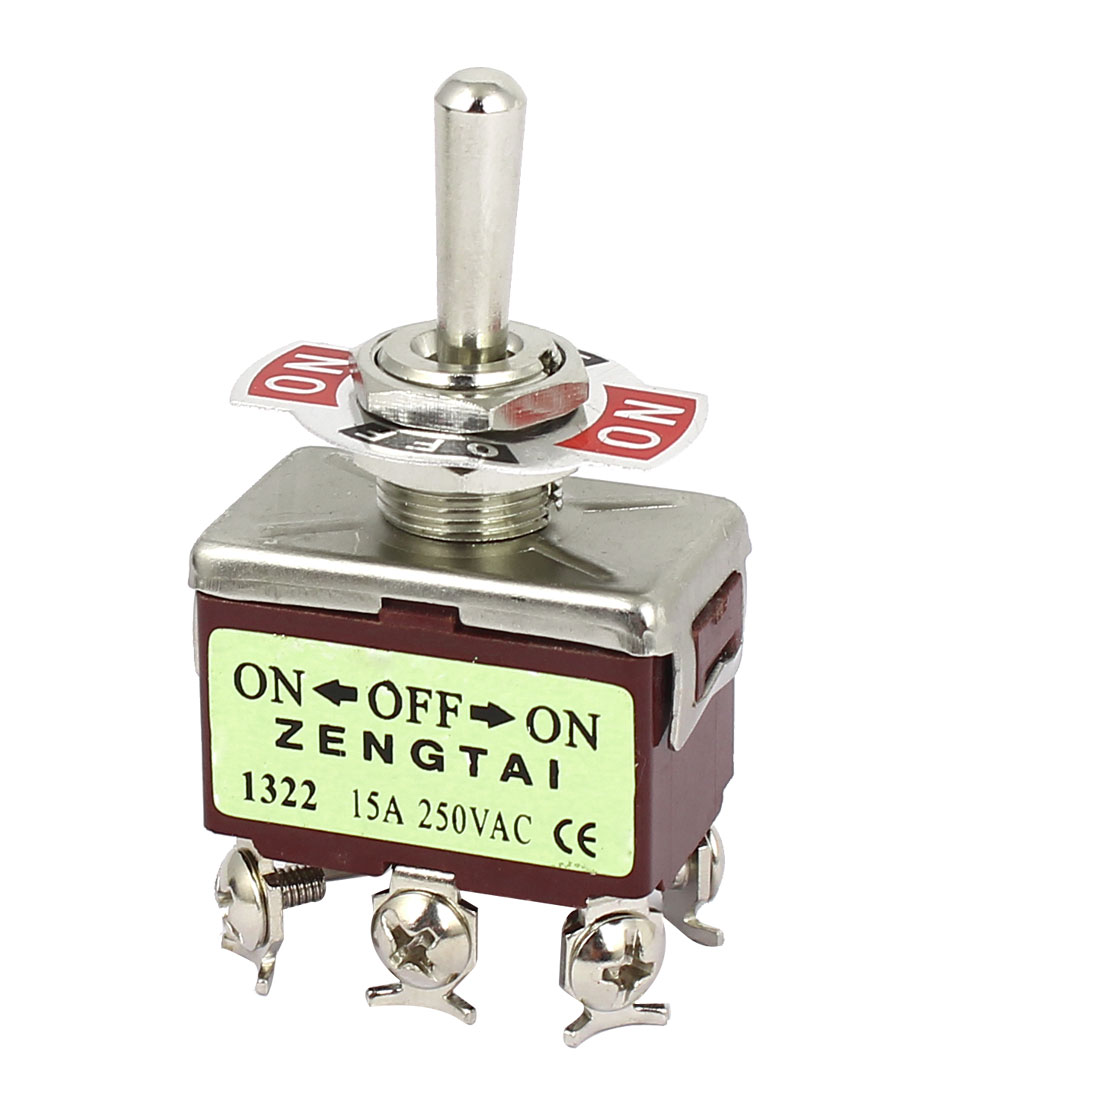 AC250V 15A DPDT ON-OFF-ON 3 Position Latching Miniature Toggle Switch Red